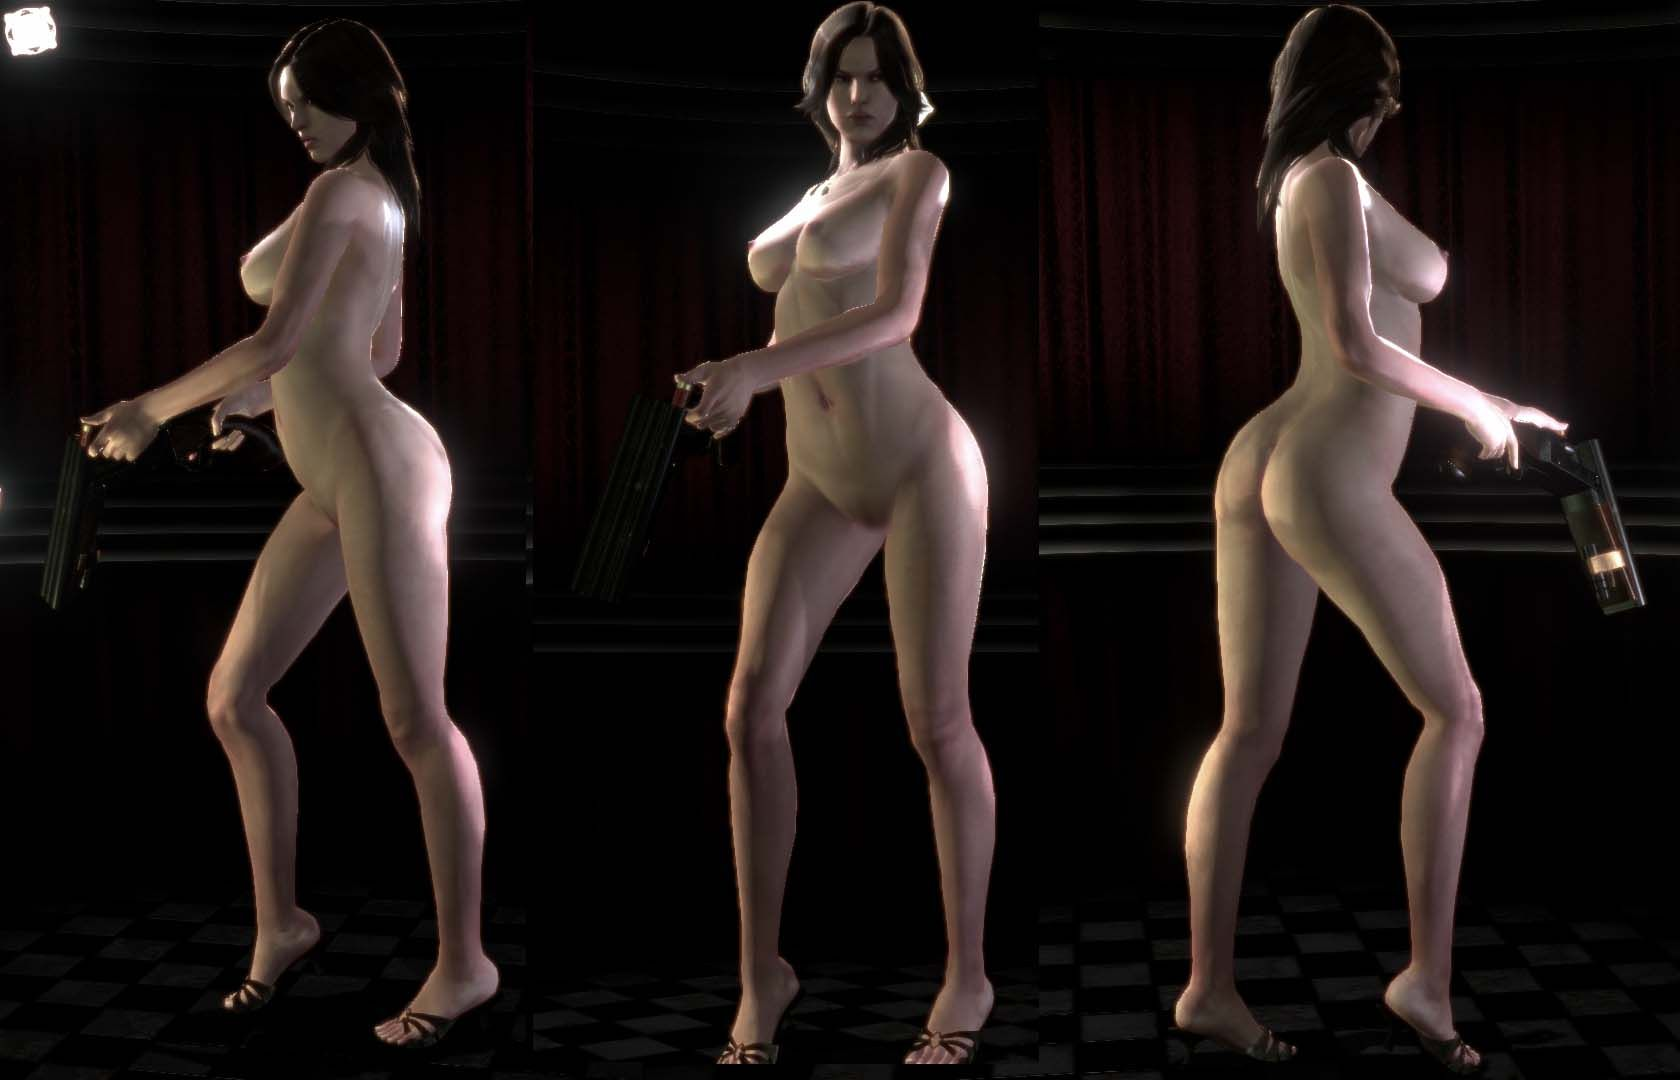 Resident evil 5 girls naked sex videos